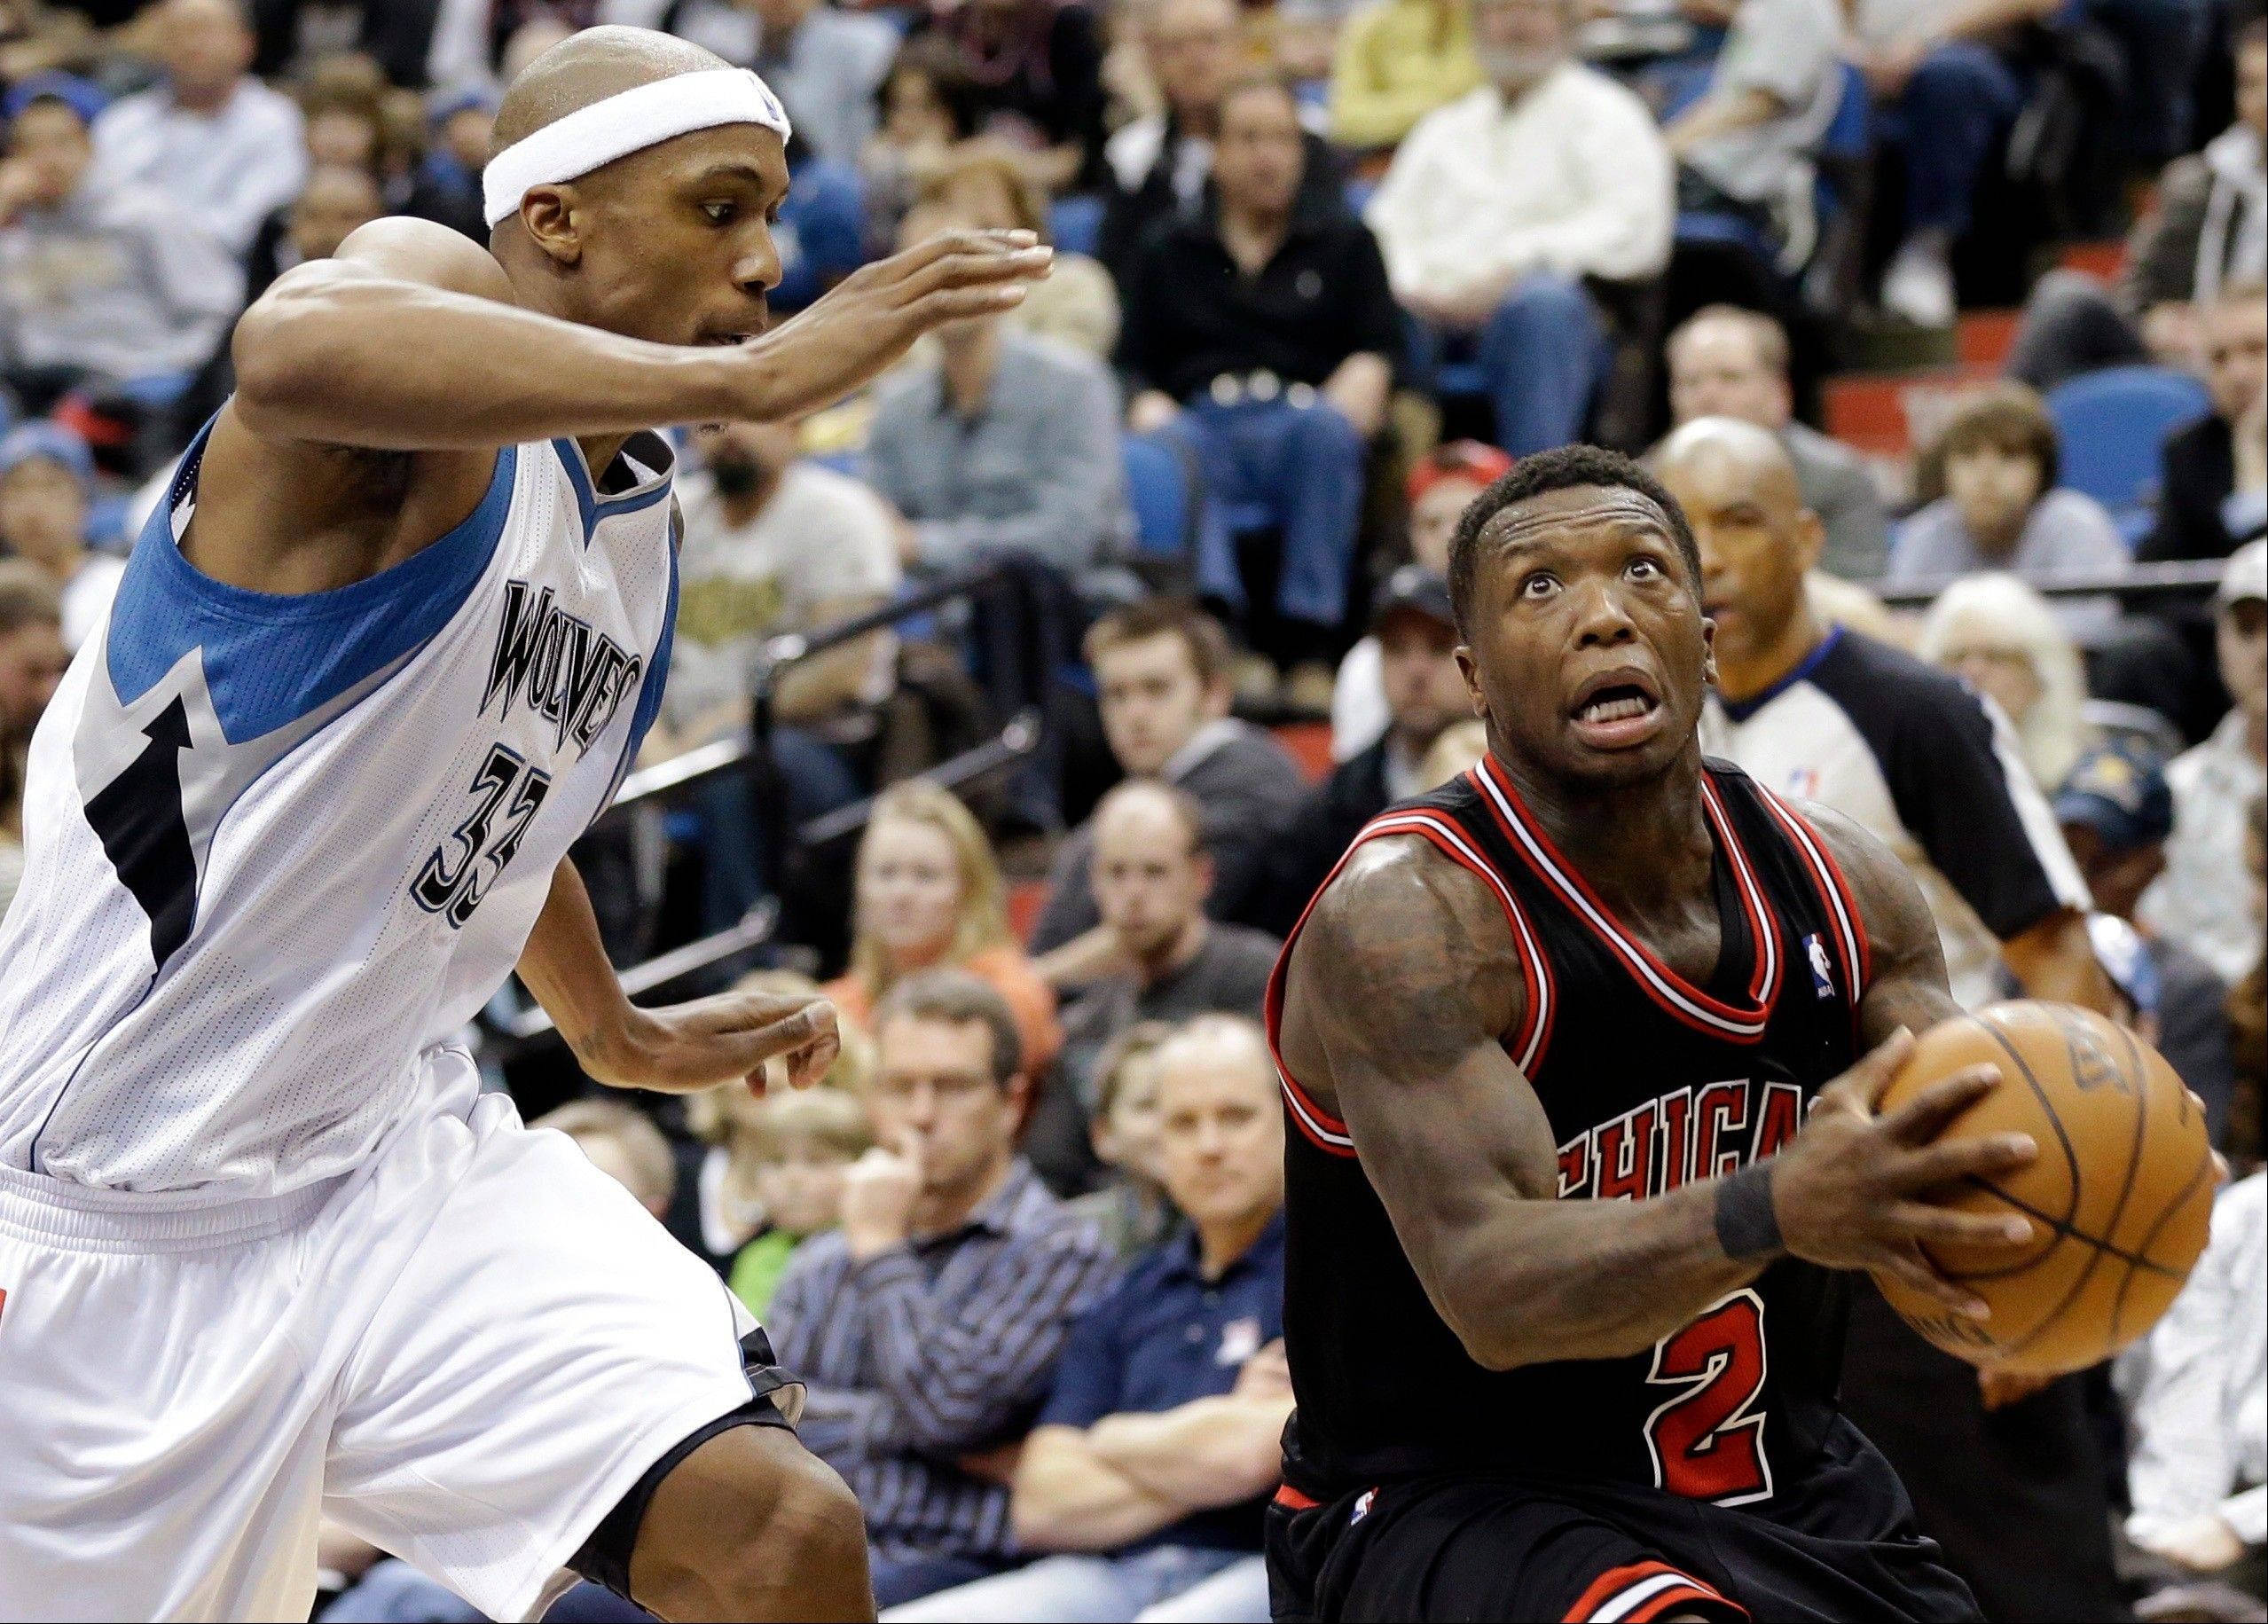 Chicago Bulls' Nate Robinson, right, drives to the basket as Minnesota Timberwolves' Dante Cunningham pursues in the second half last night. The Bulls won 104-97.